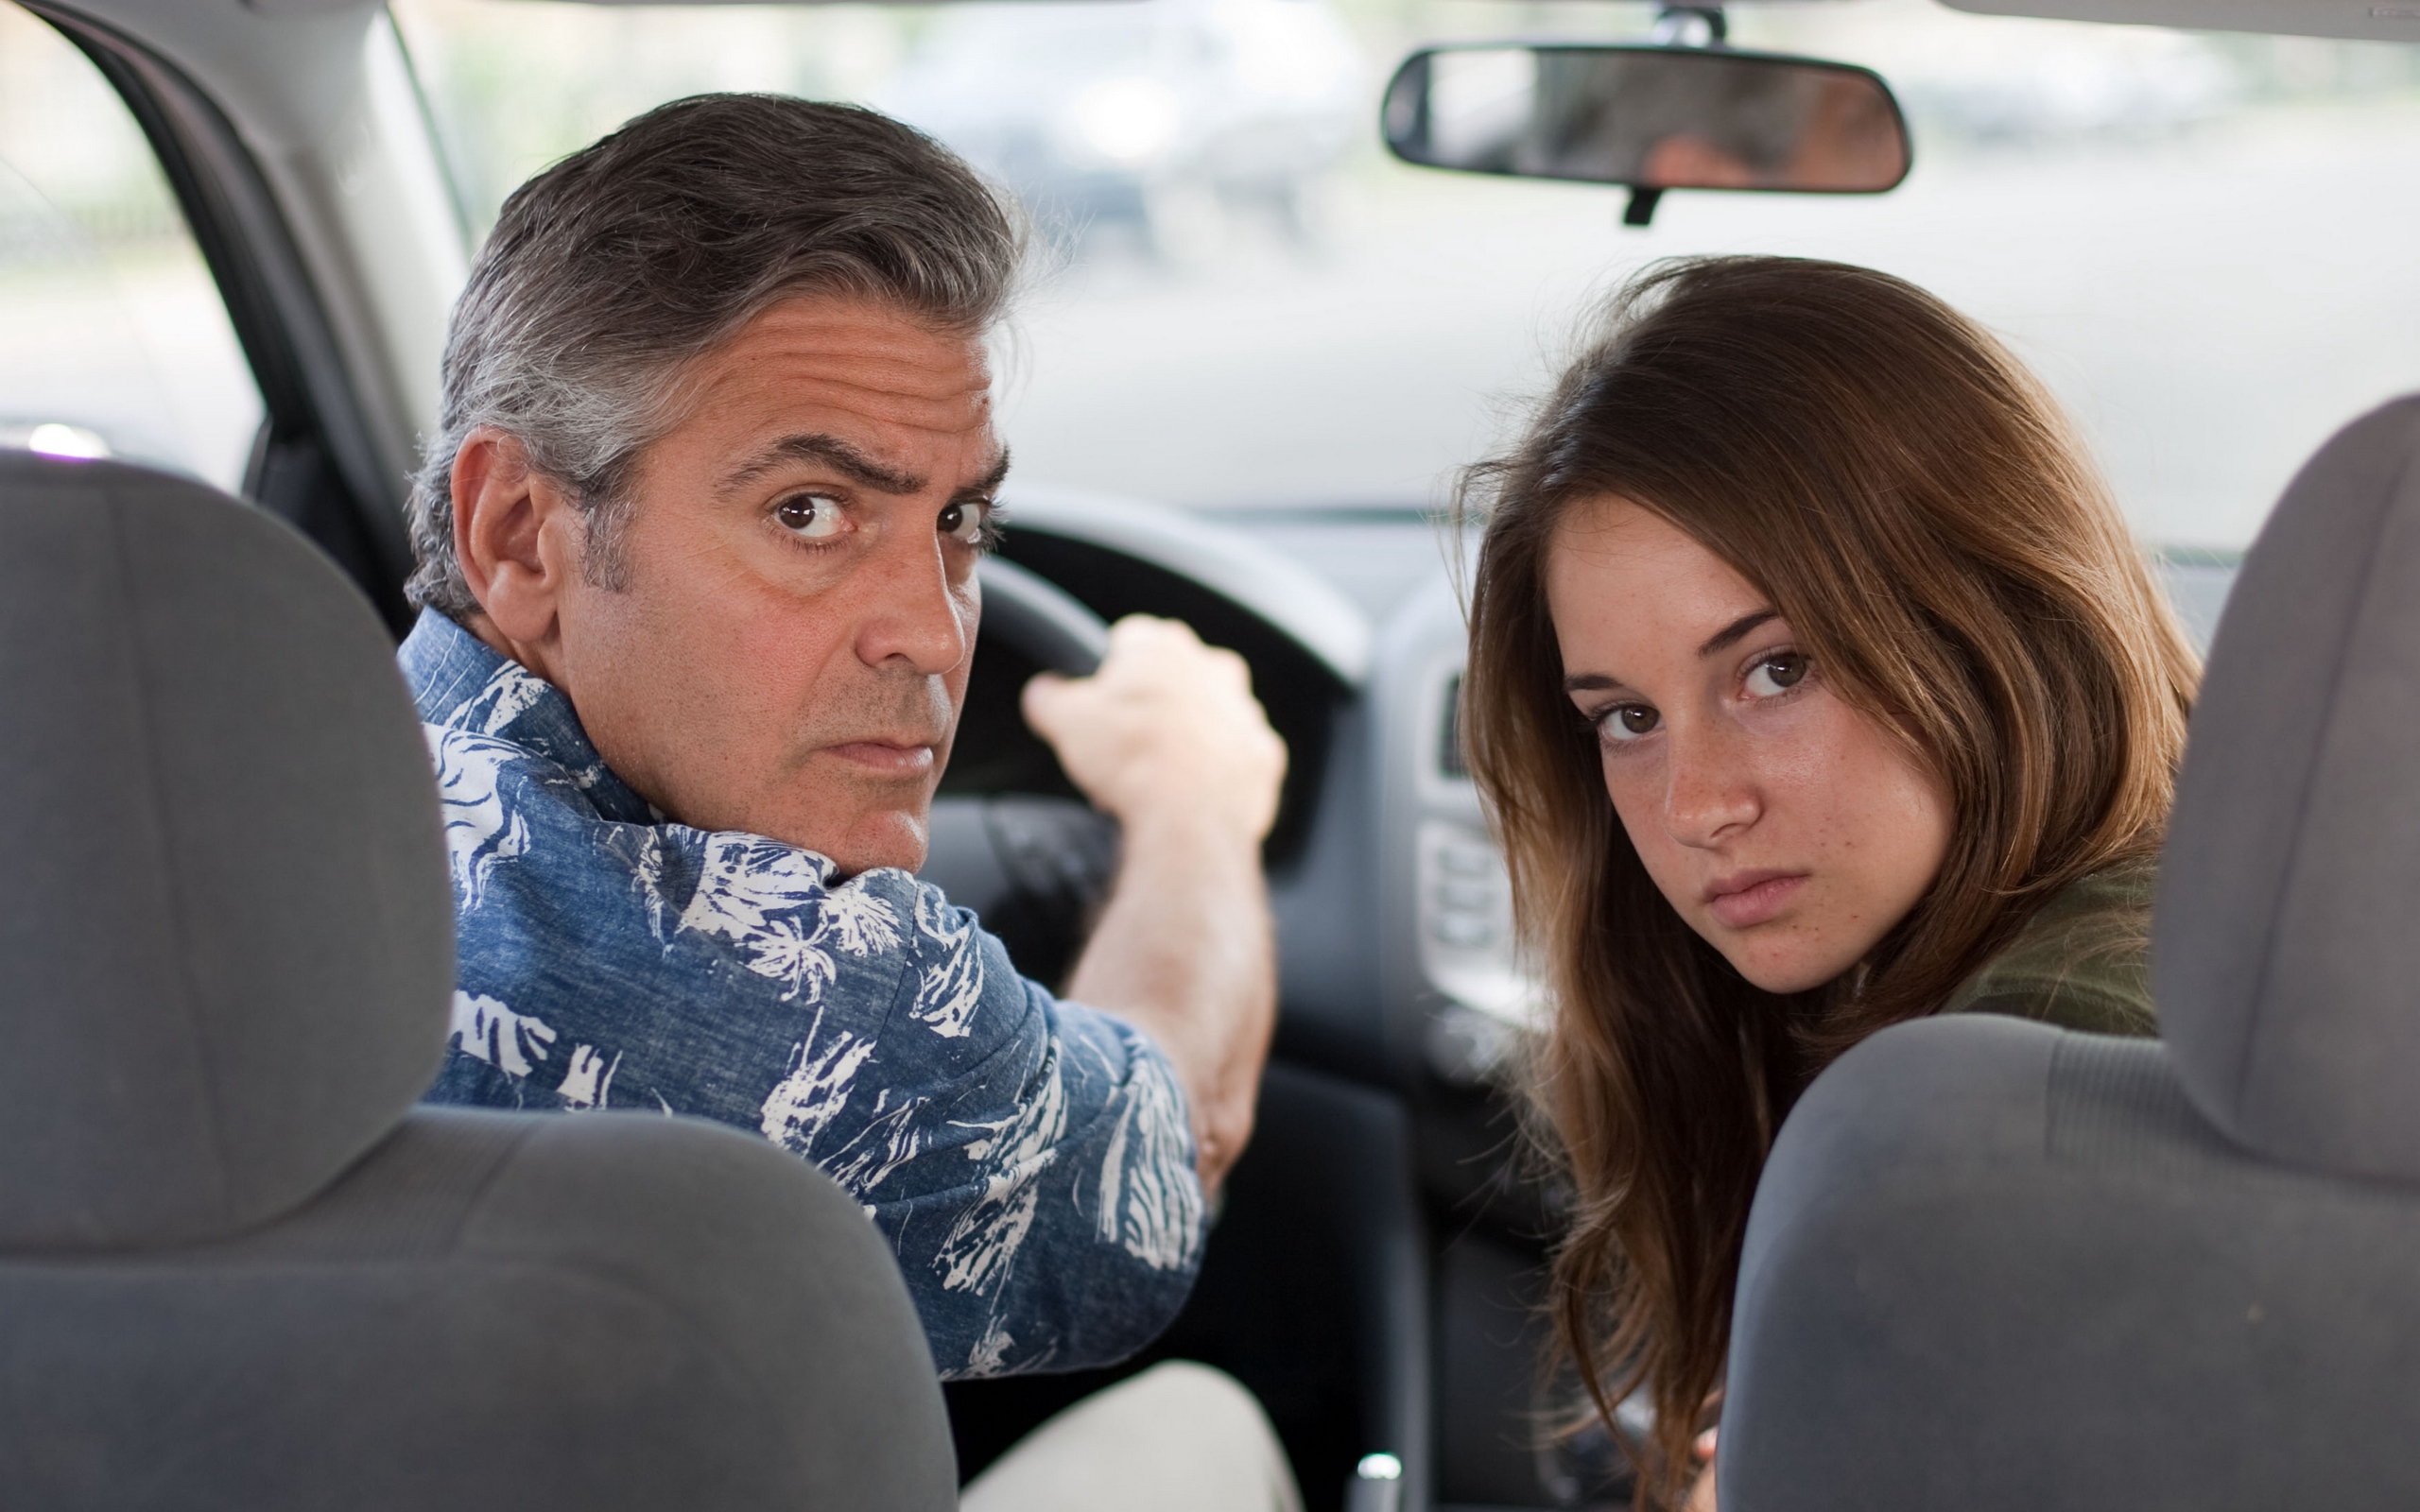 Download wallpaper 2560x1600 the descendants george clooney 2560x1600